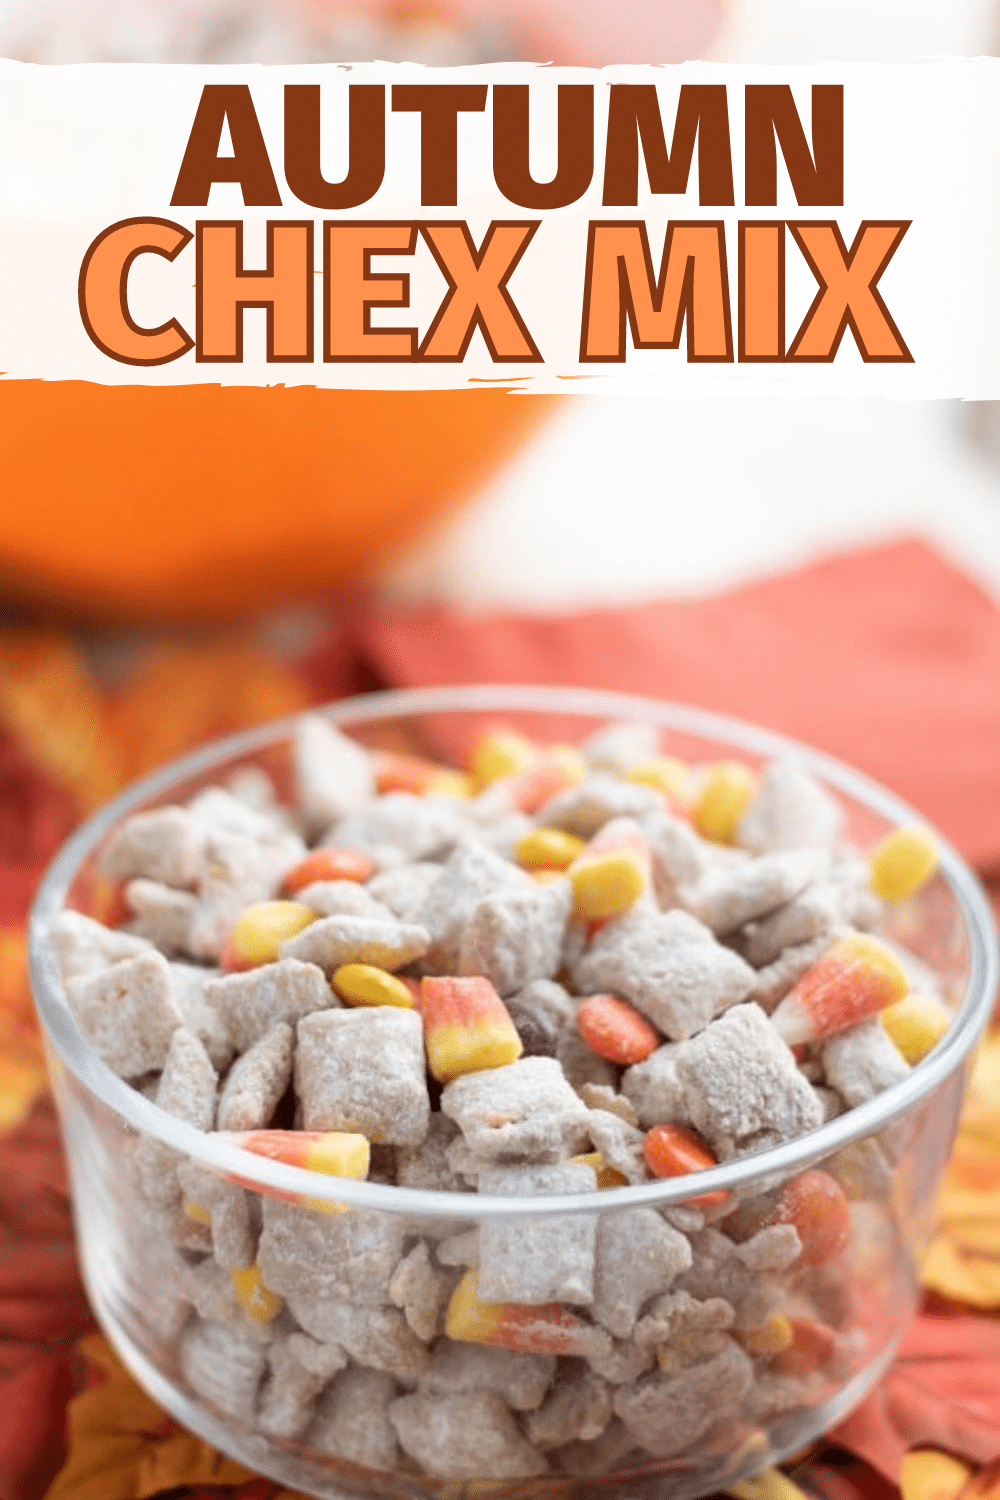 This Autumn Chex Mix is perfect for Fall parties! Just like Muddy Buddies, but with Fall colors from candy. #Fall #chexmix #muddybuddies #candycorn via @wondermomwannab